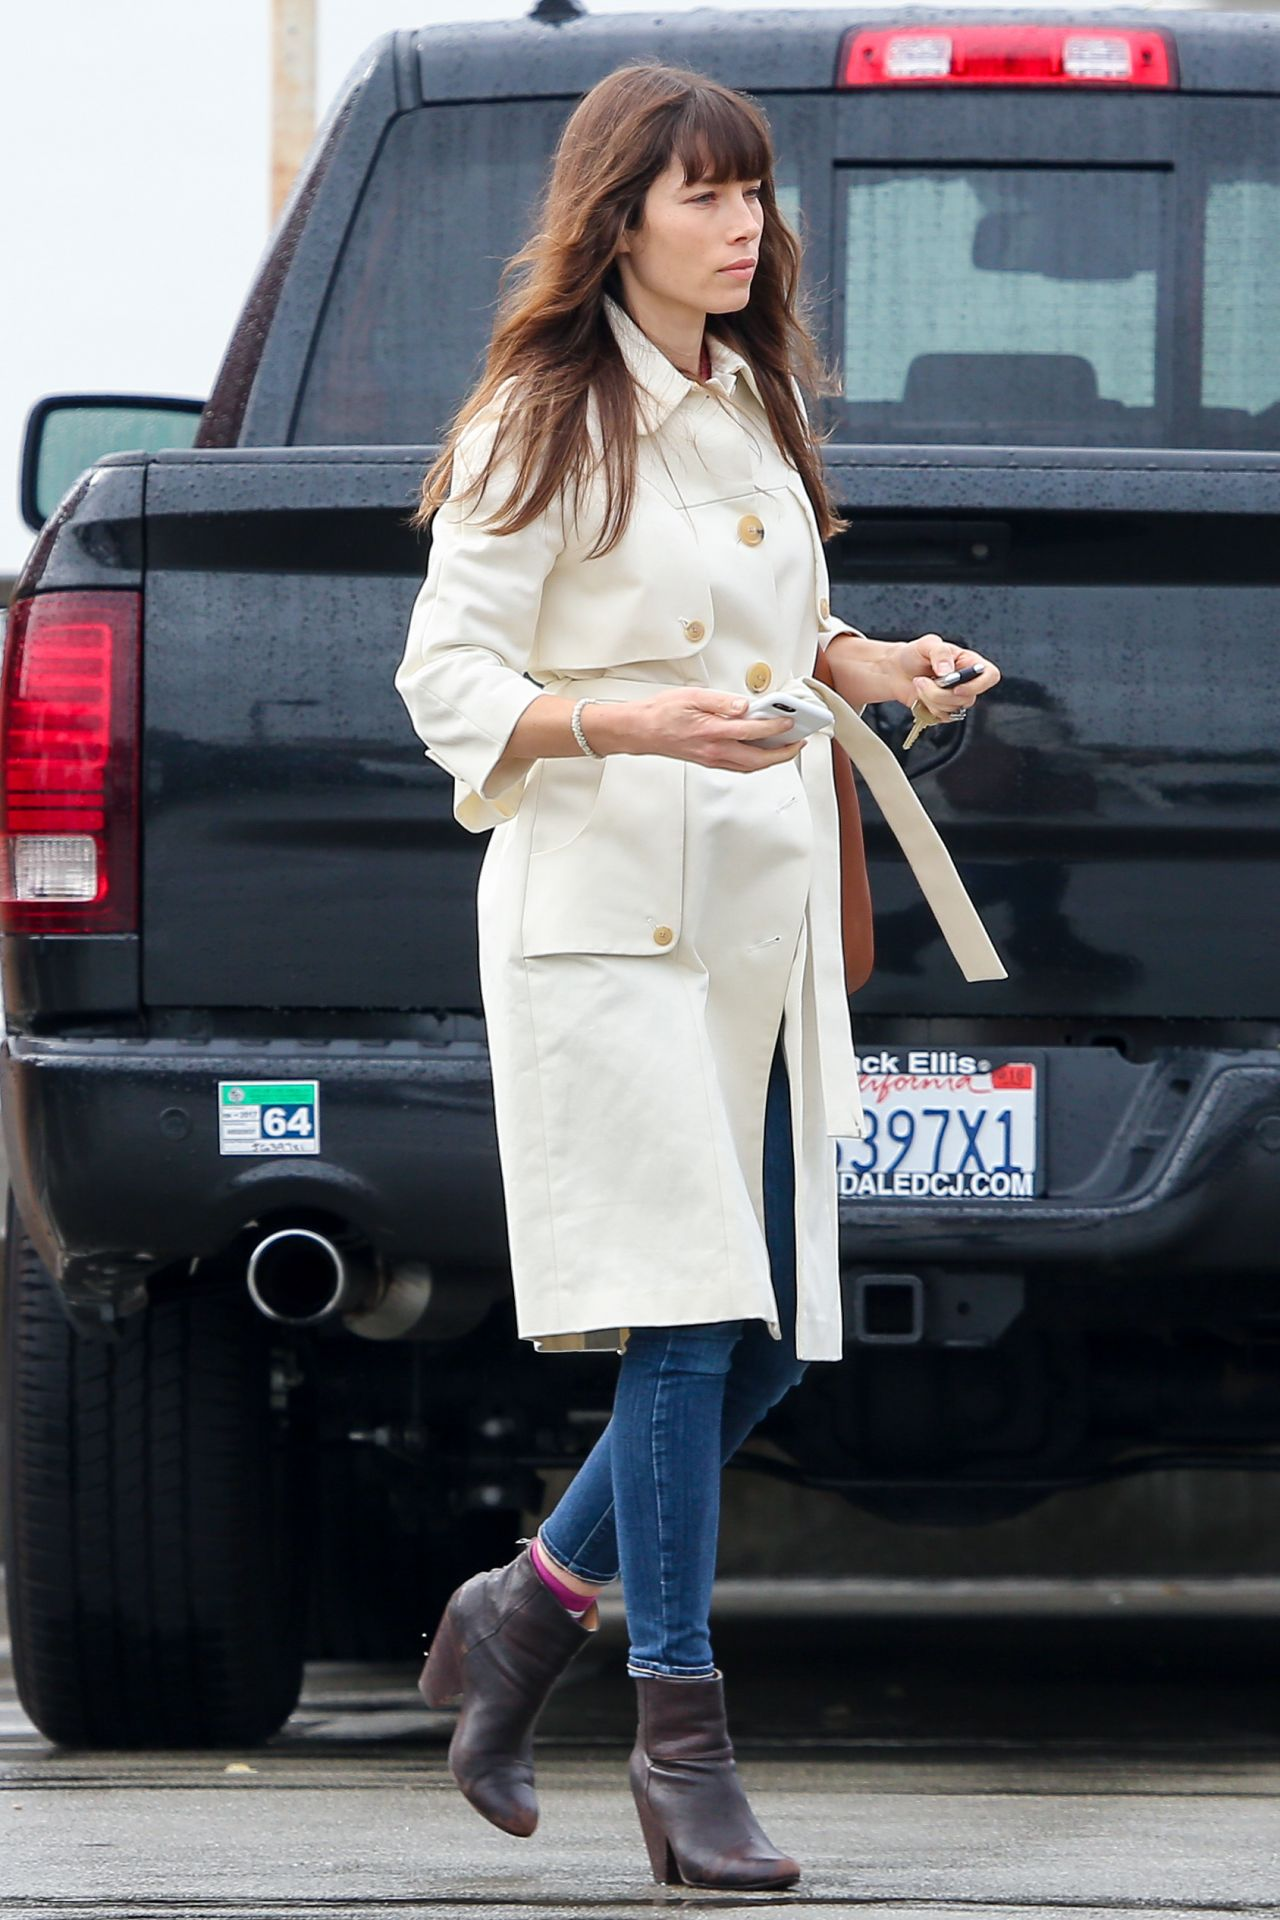 Jessica biel went out for a lunch in santa monica 262019 nudes (24 pic)